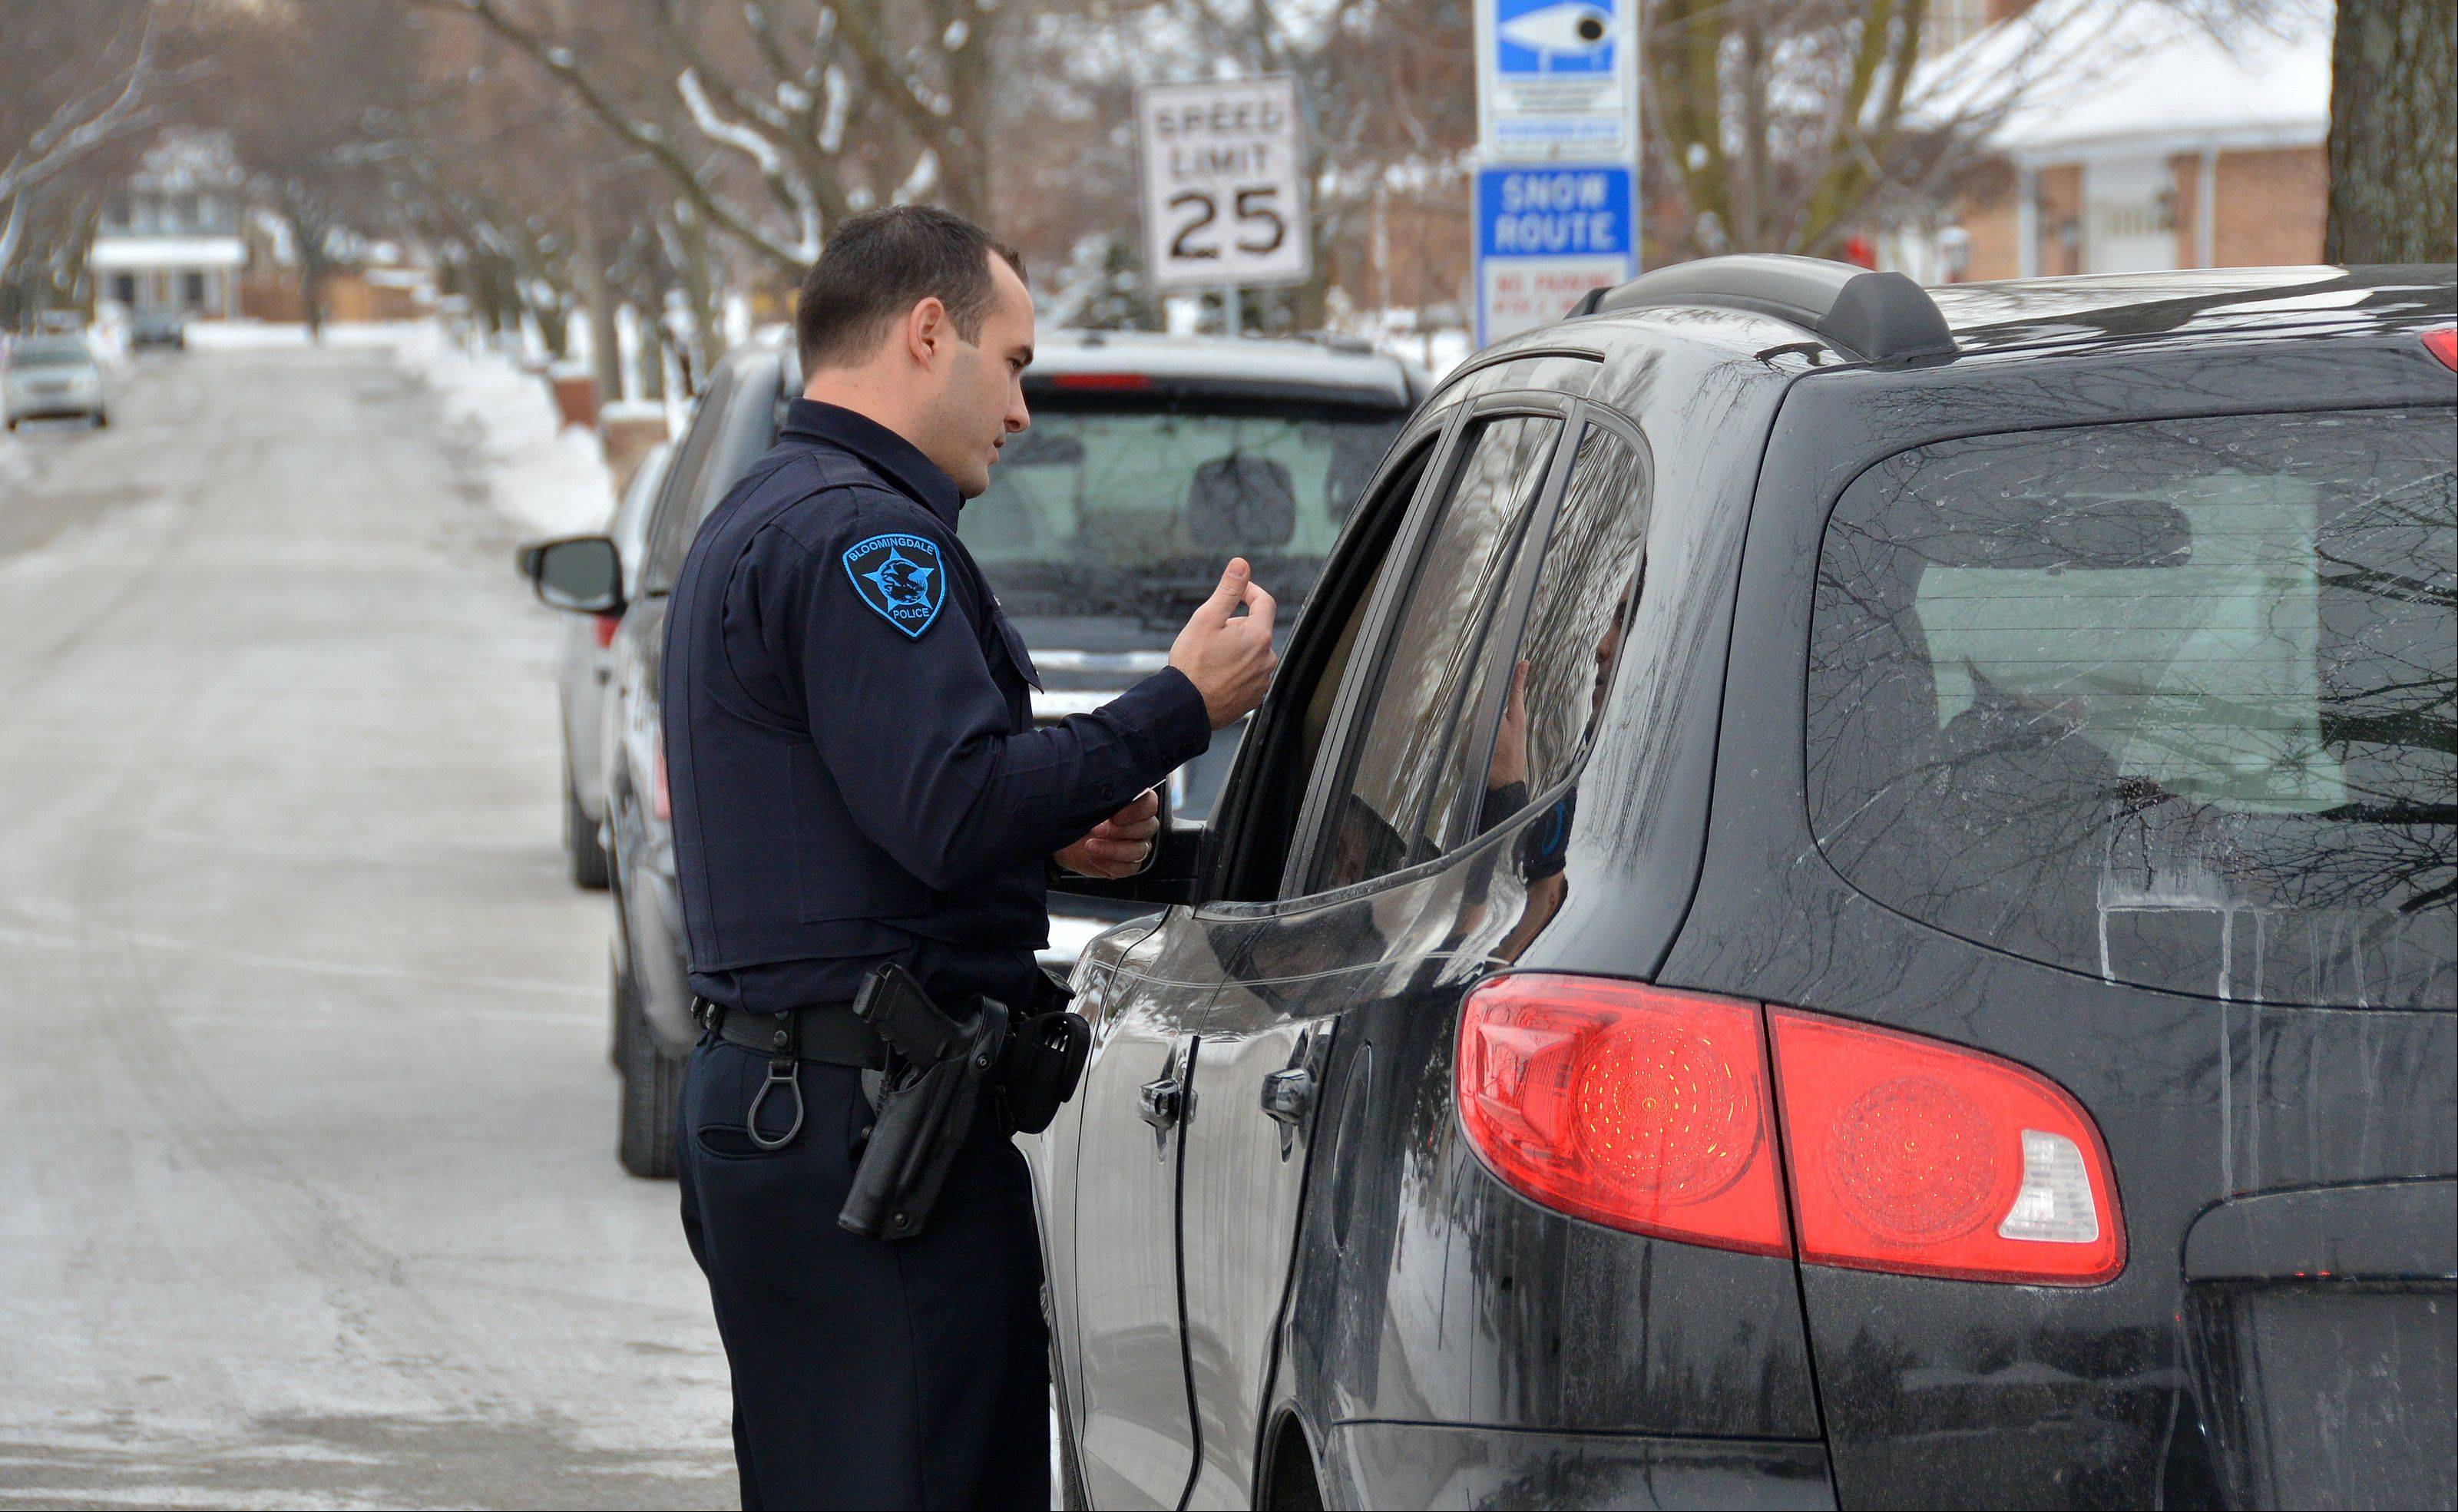 Bloomingdale Police Officer Levi McGhee warns a driver about speeding. McGhee, like many officers, believes having better access to FOID information would make police safer during such stops.